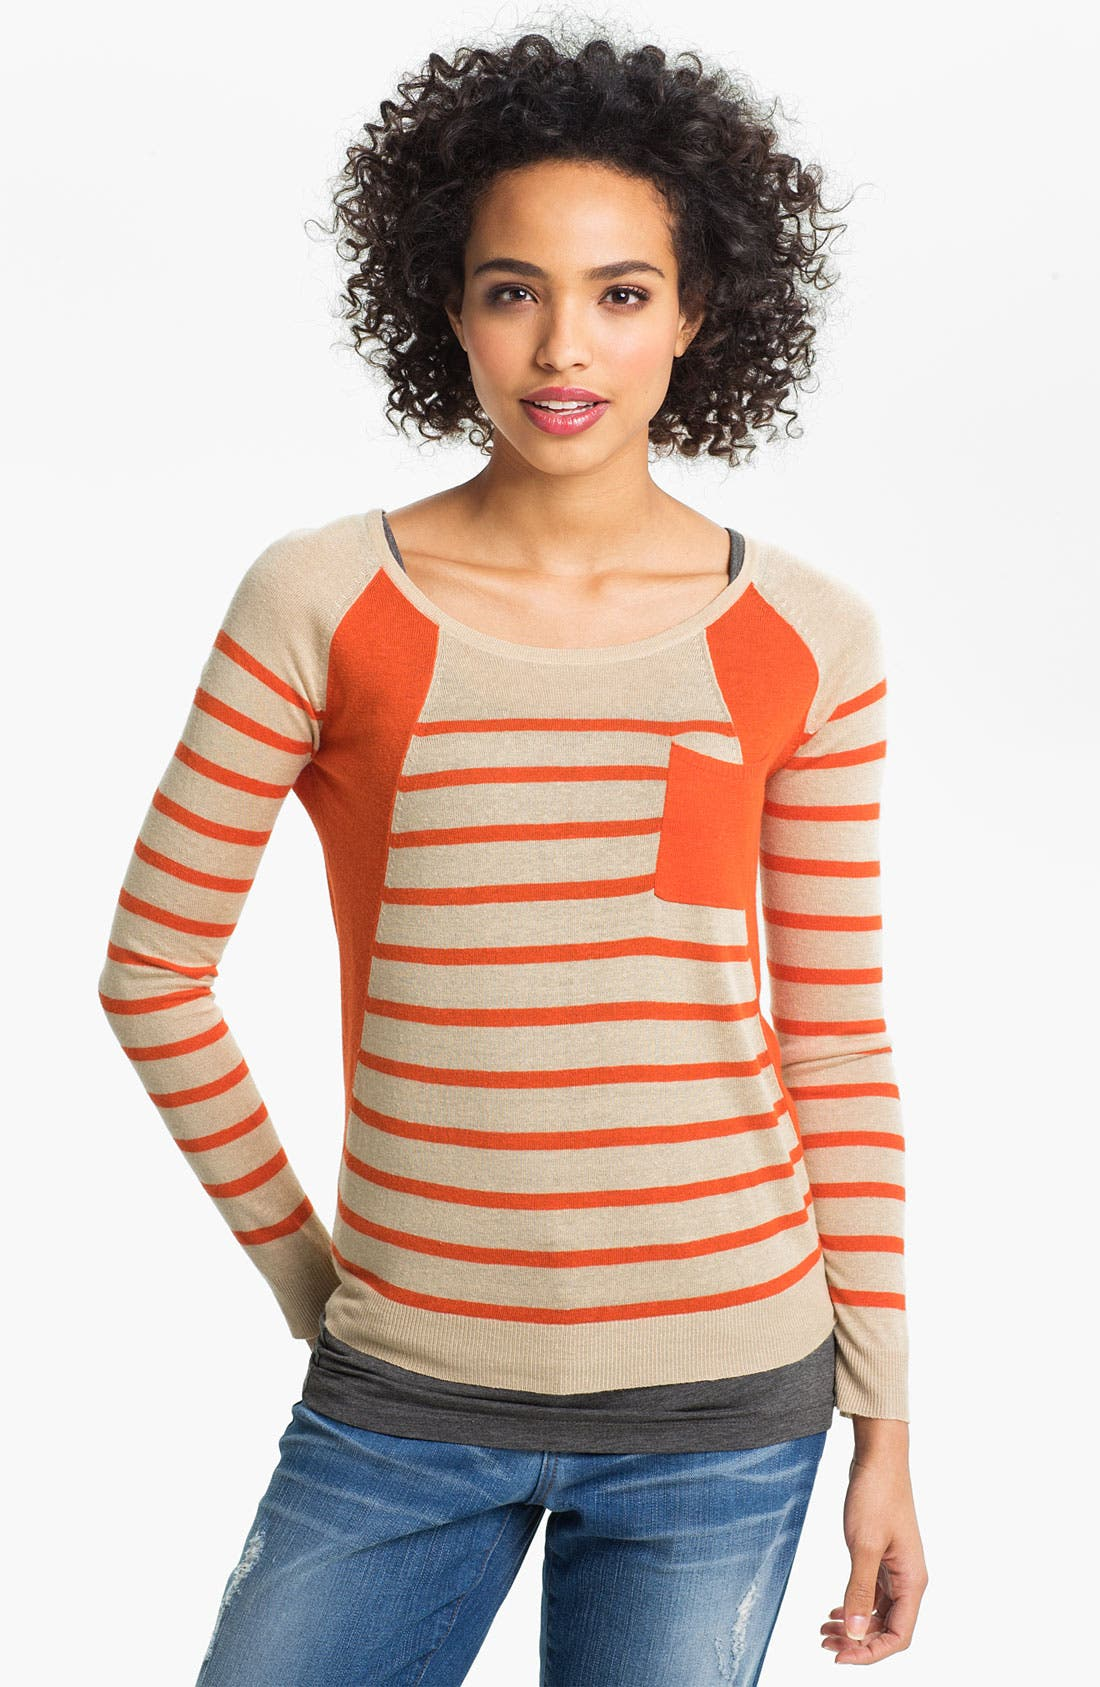 Alternate Image 1 Selected - Two by Vince Camuto Colorblock Stripe Sweater